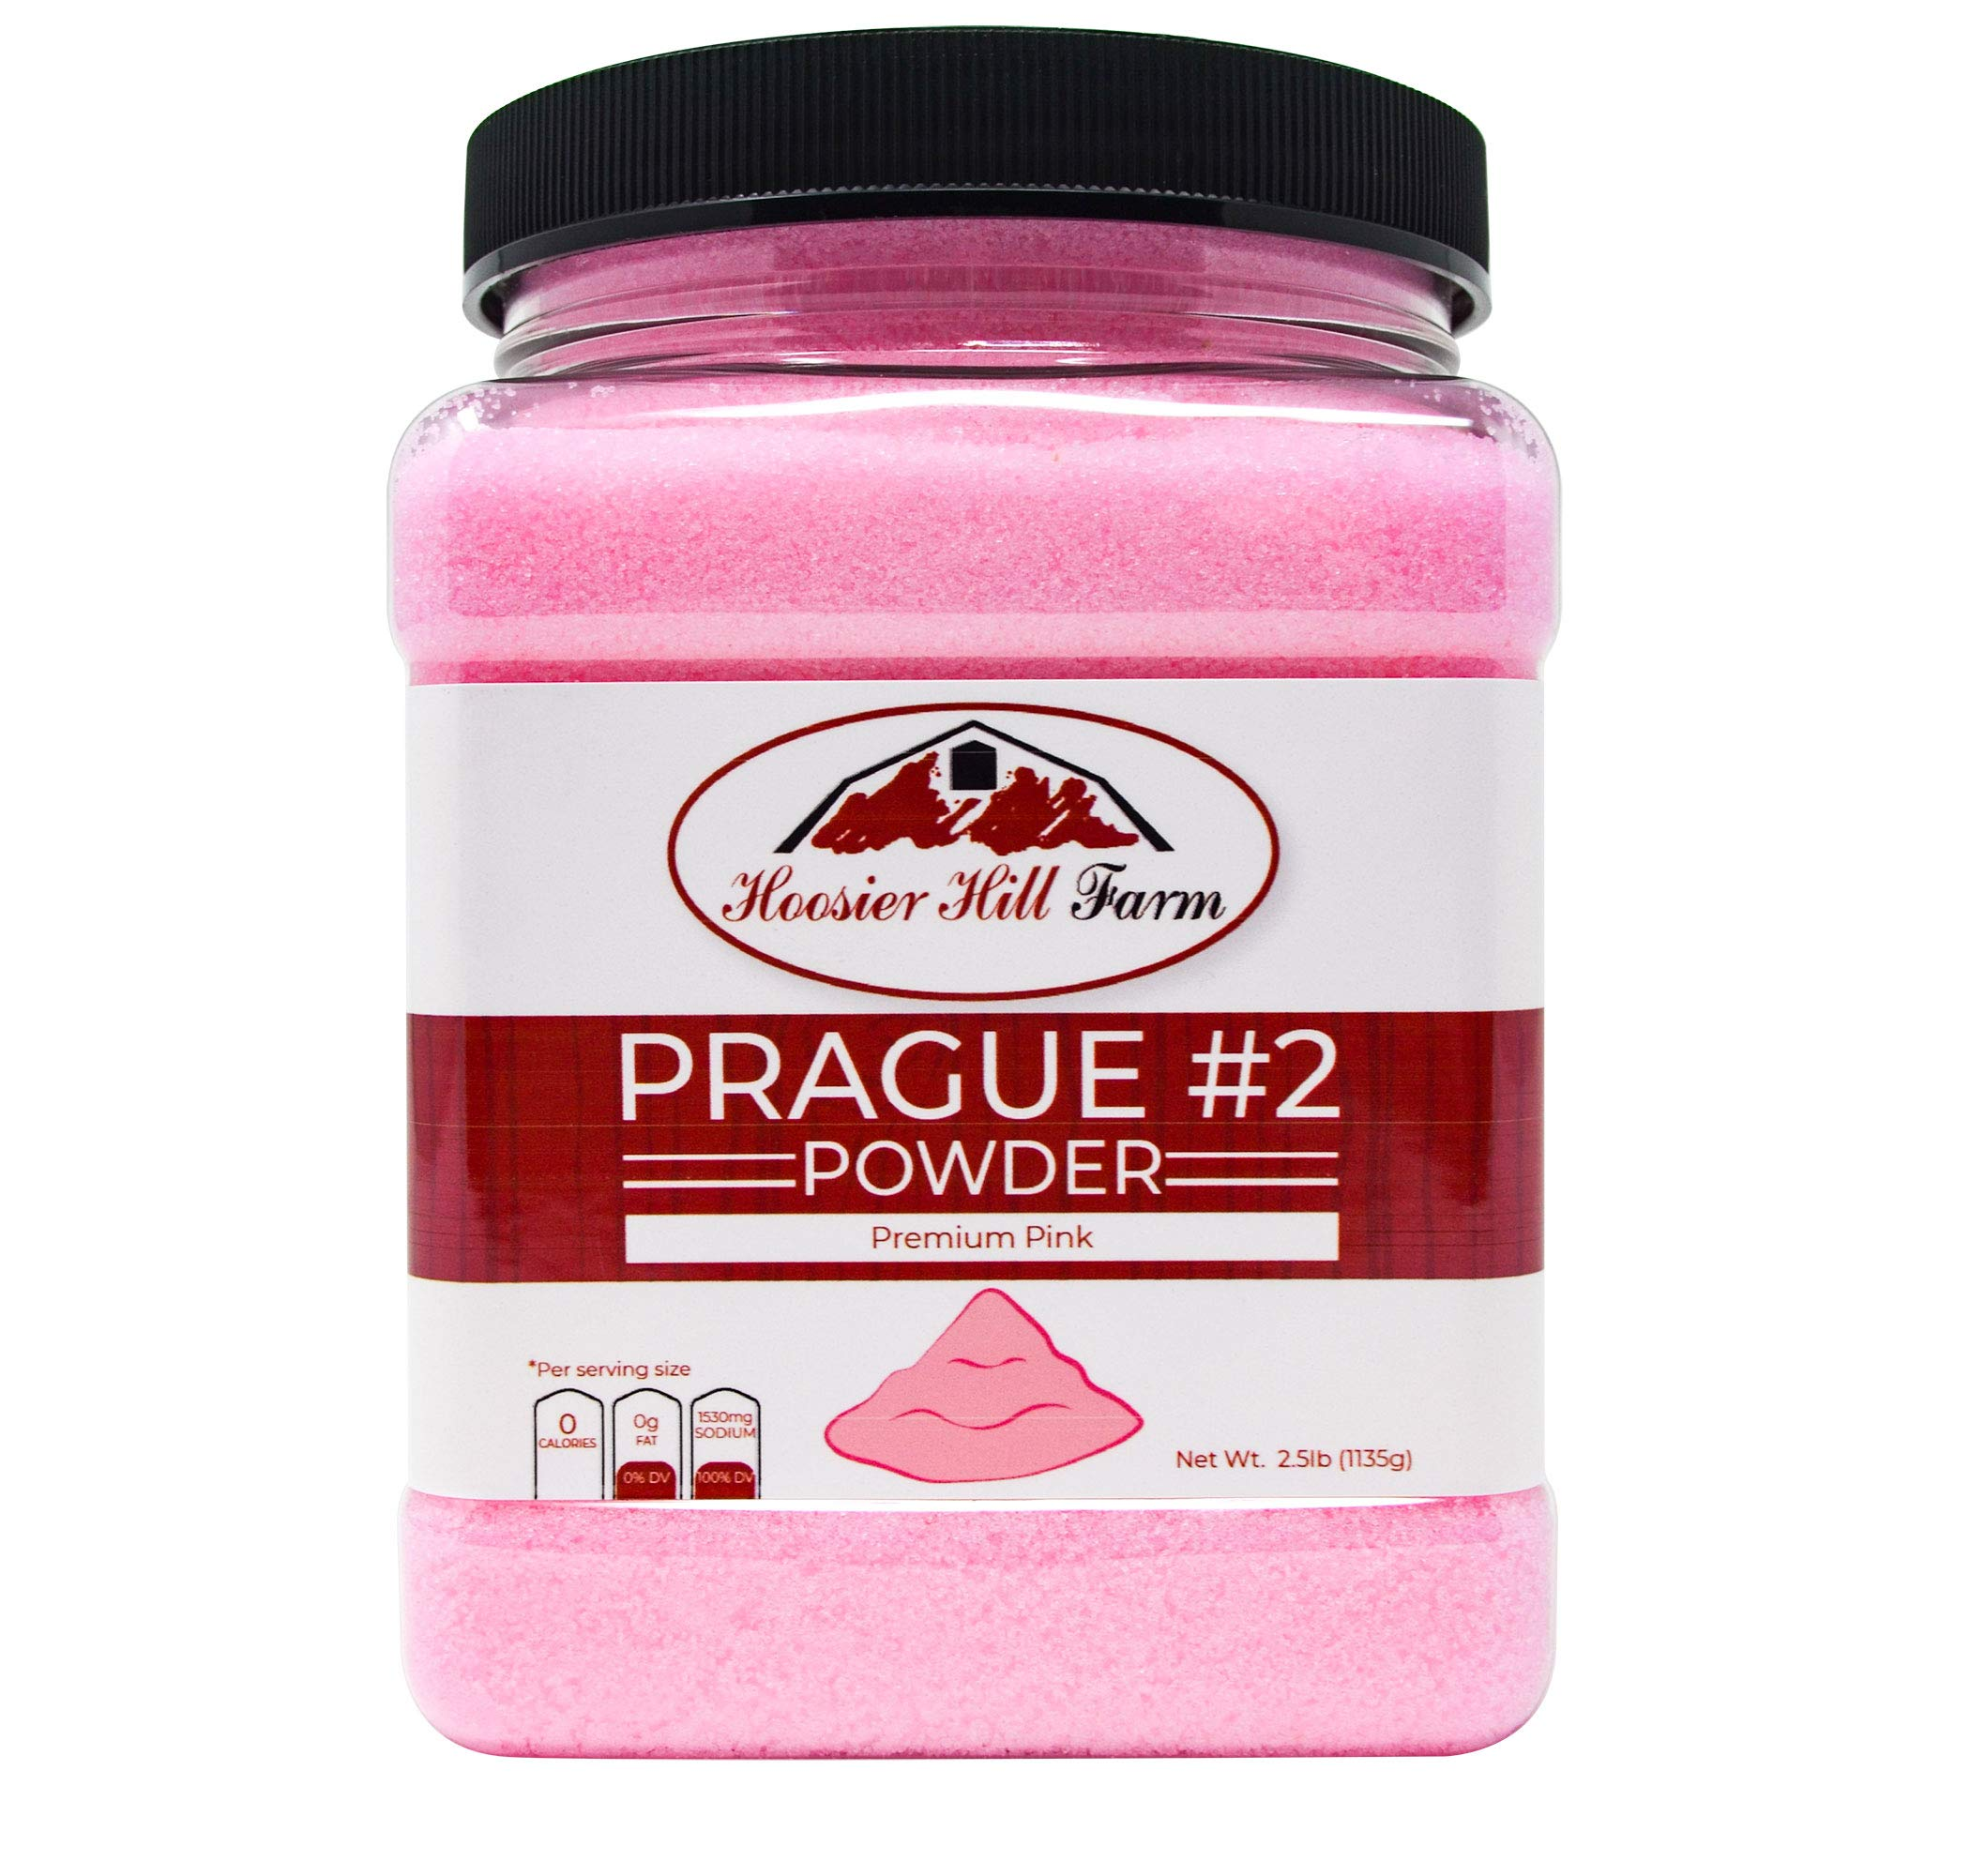 Hoosier Hill Farm Prague Powder No.2 (#2) Pink Curing Salt, 2.5 lb.